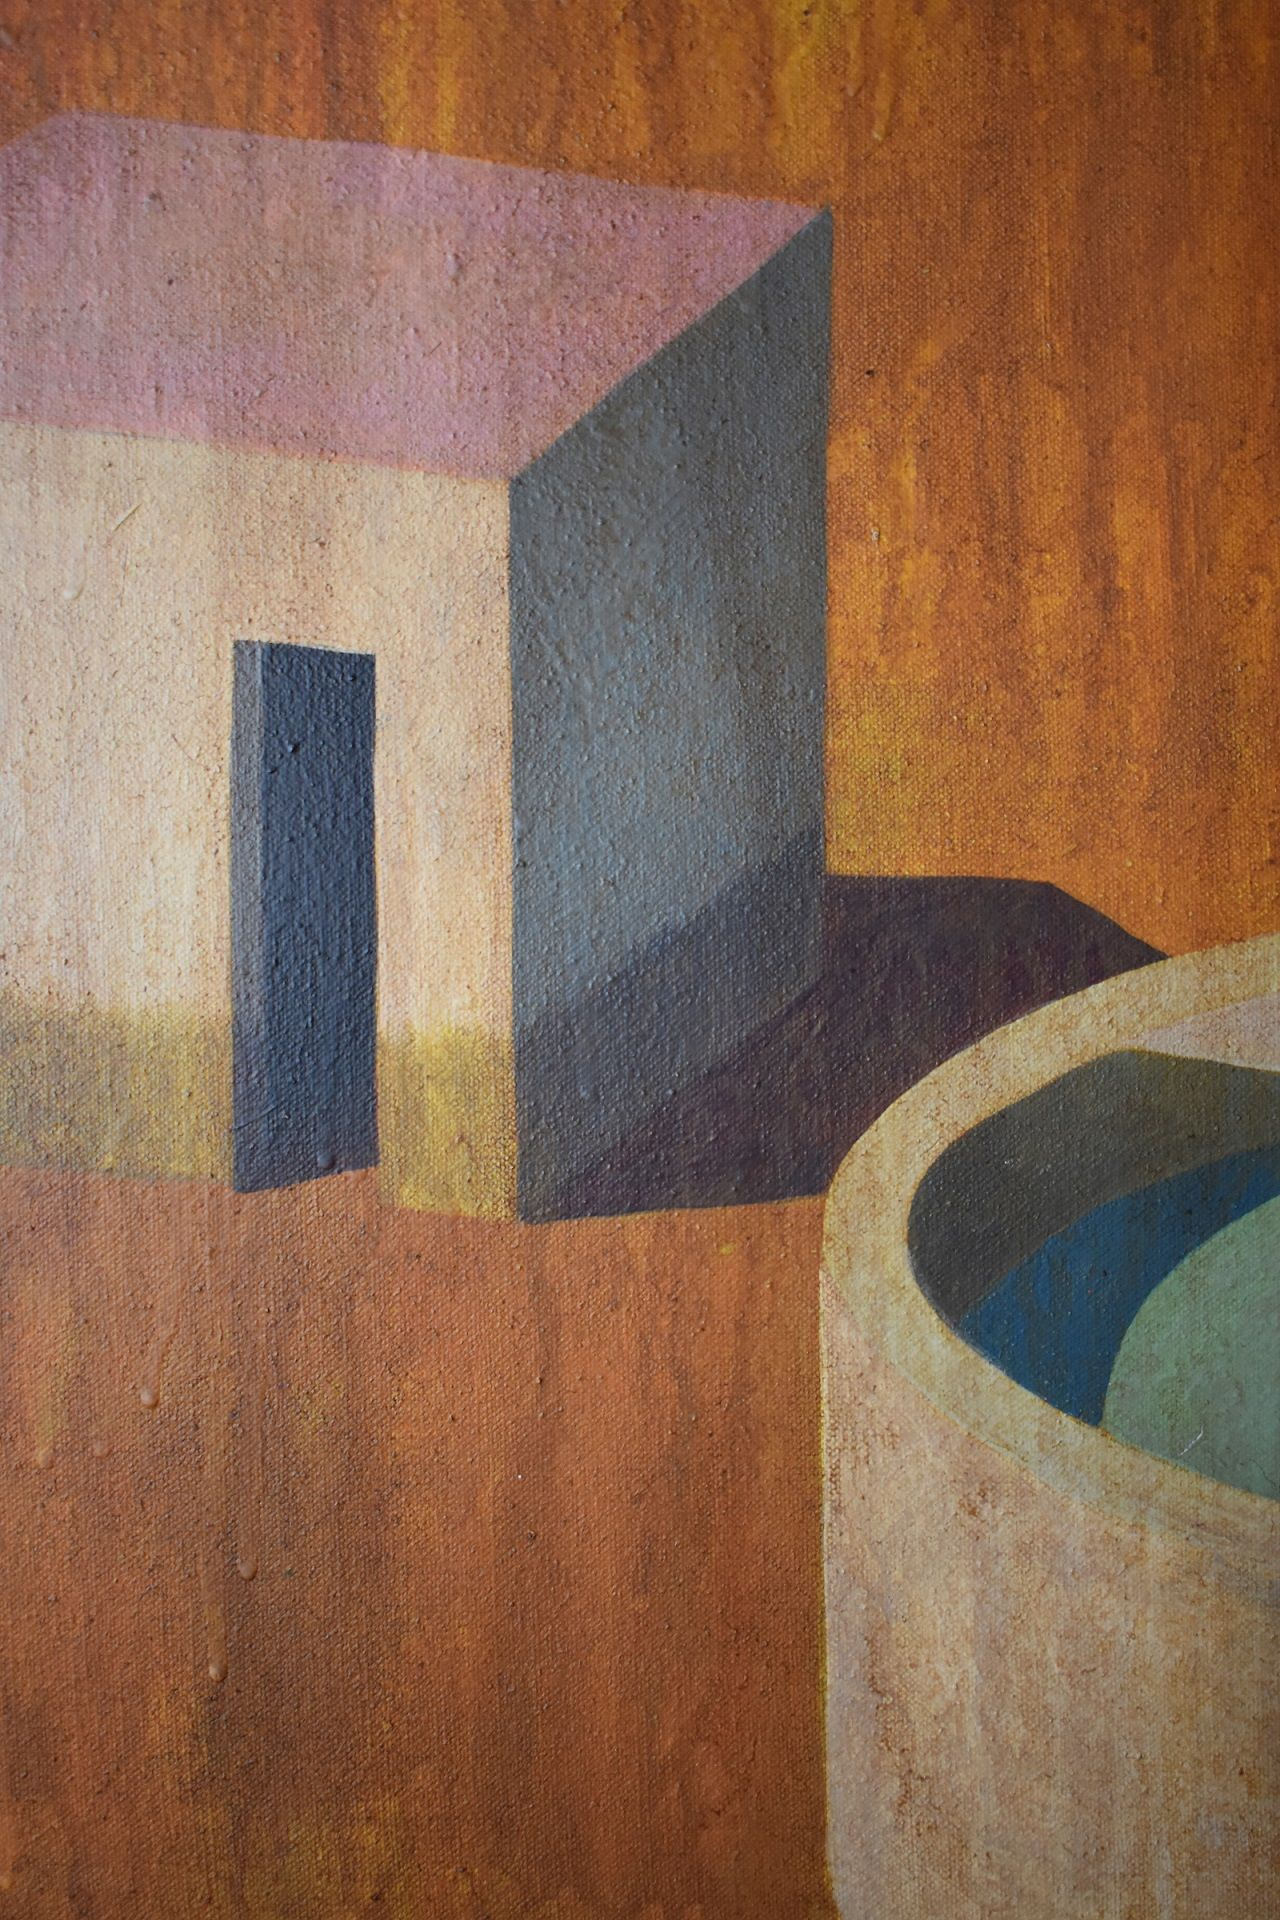 MAFI,Ramon Enrich,Contemporary painting, detail 2